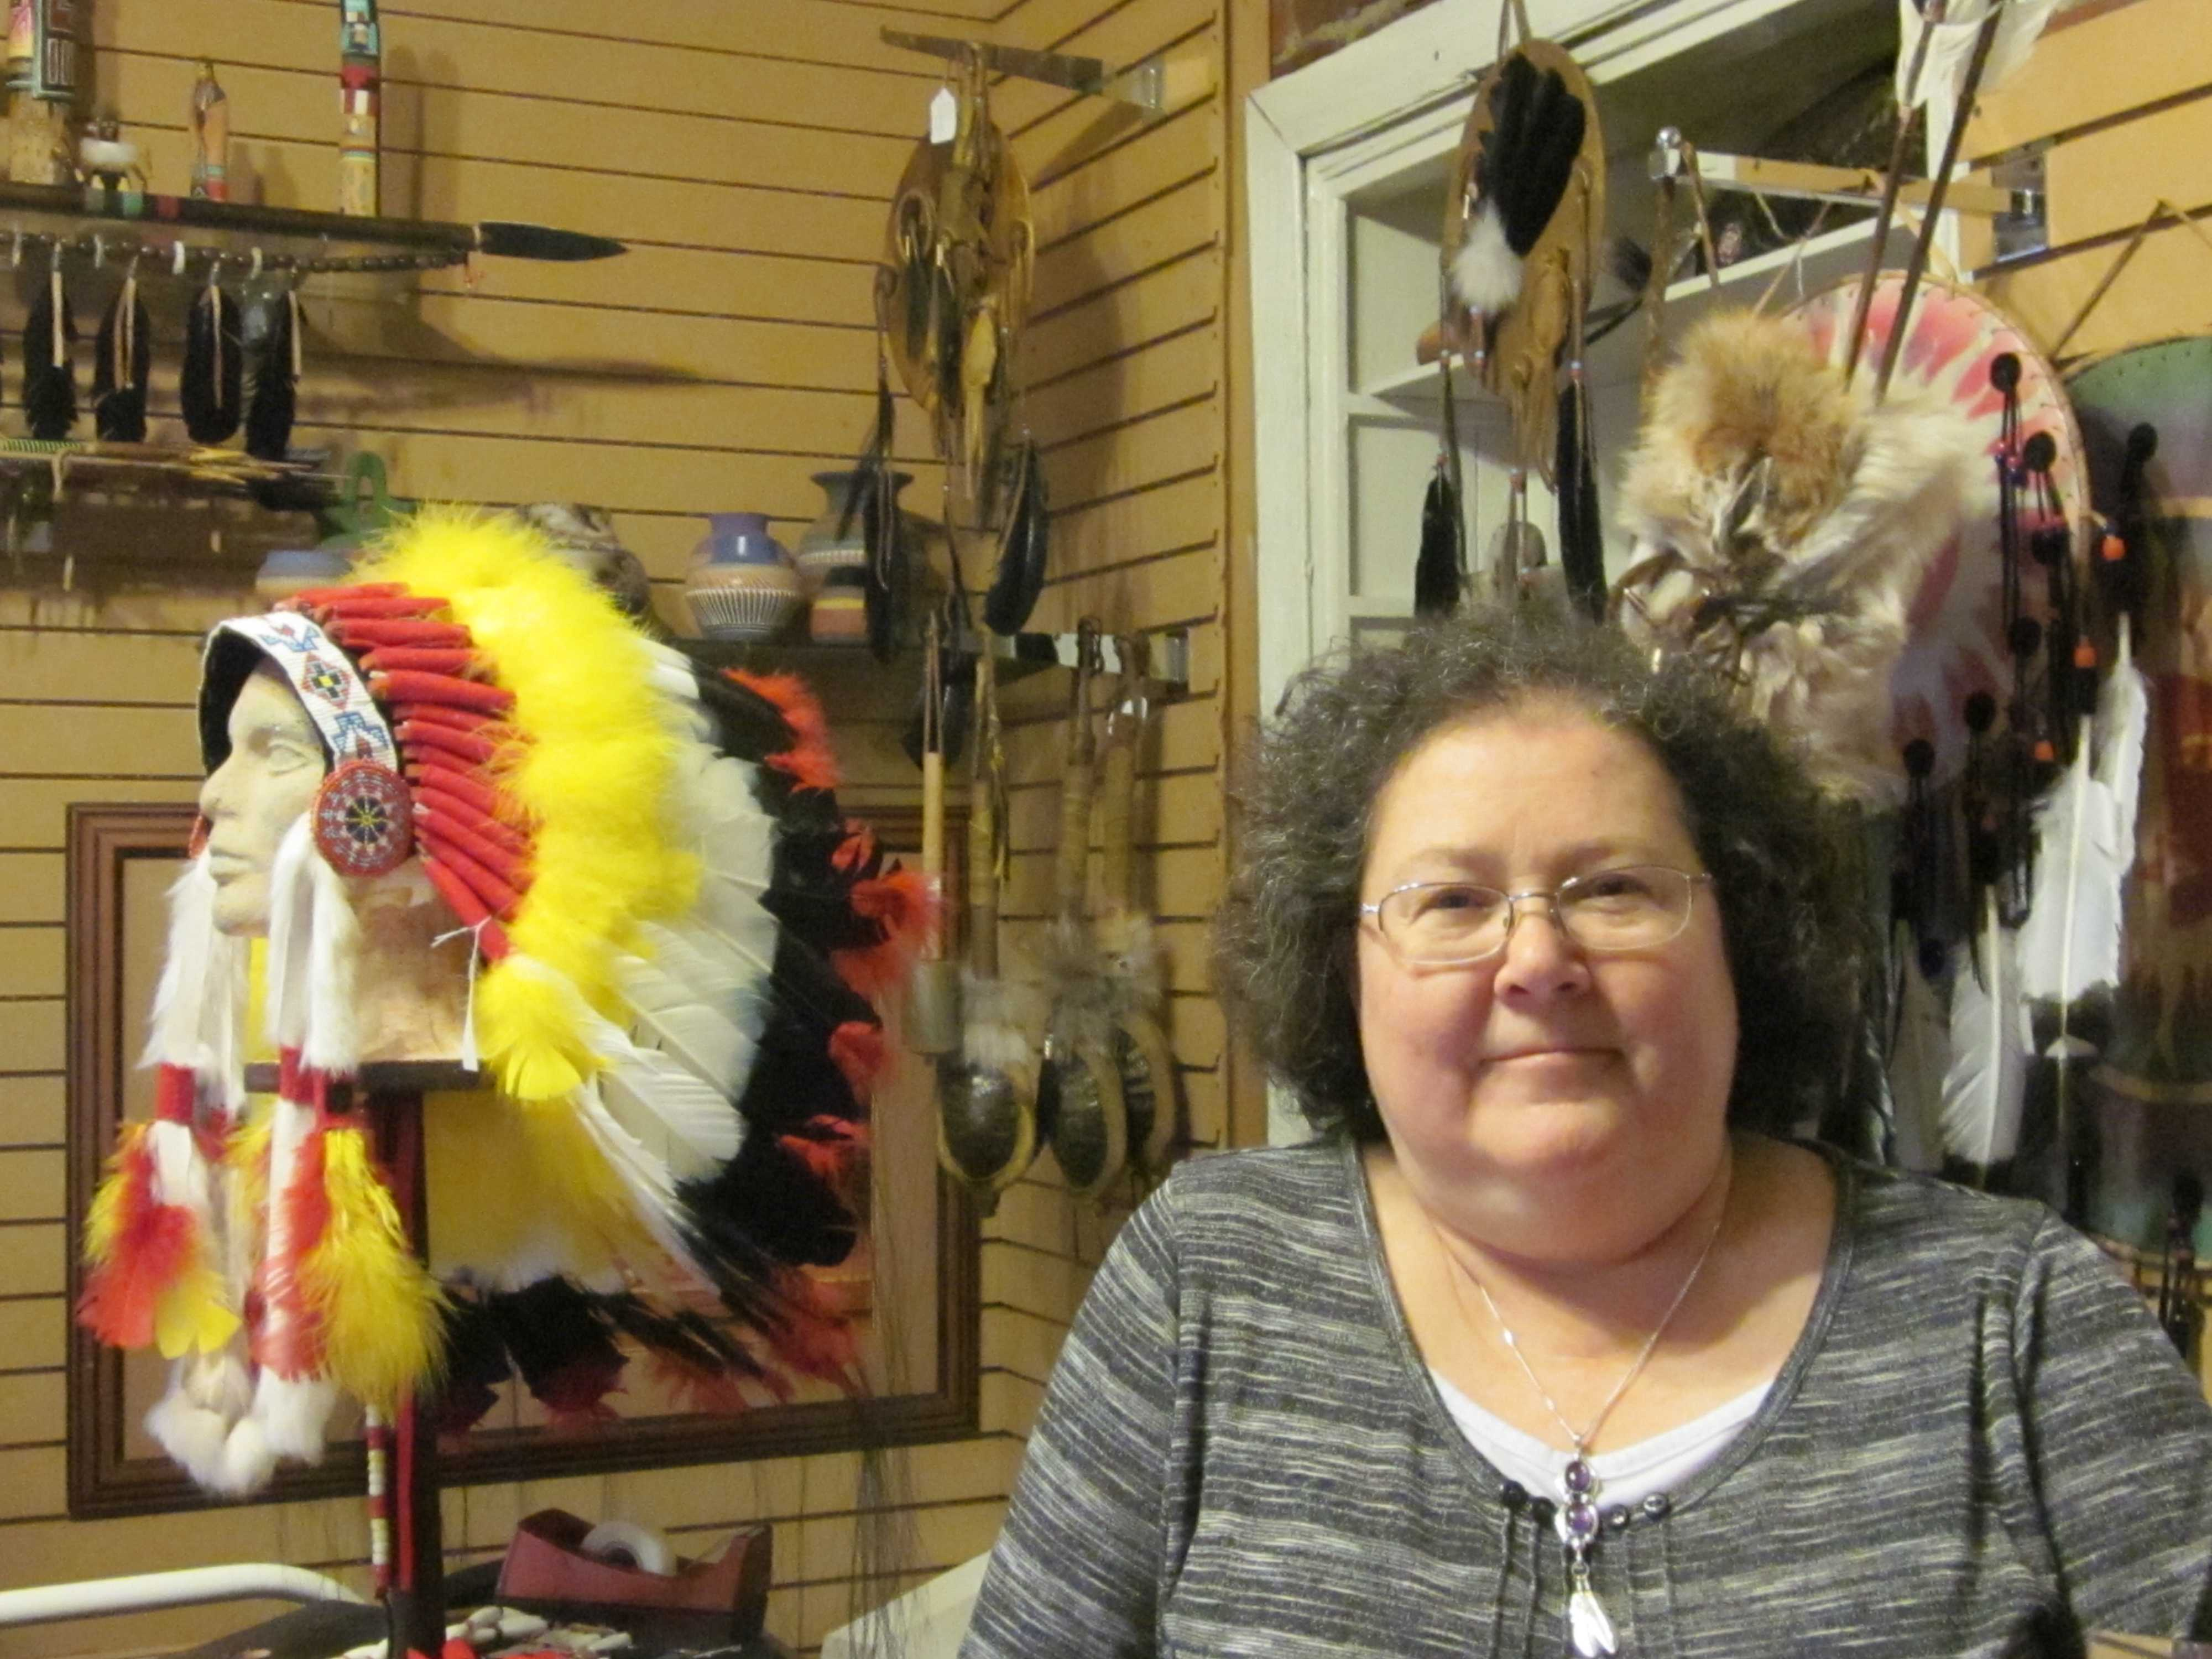 What Stores Sell Dream Catchers 40 Questions With the Owner of Dream Catcher FHNtoday 10